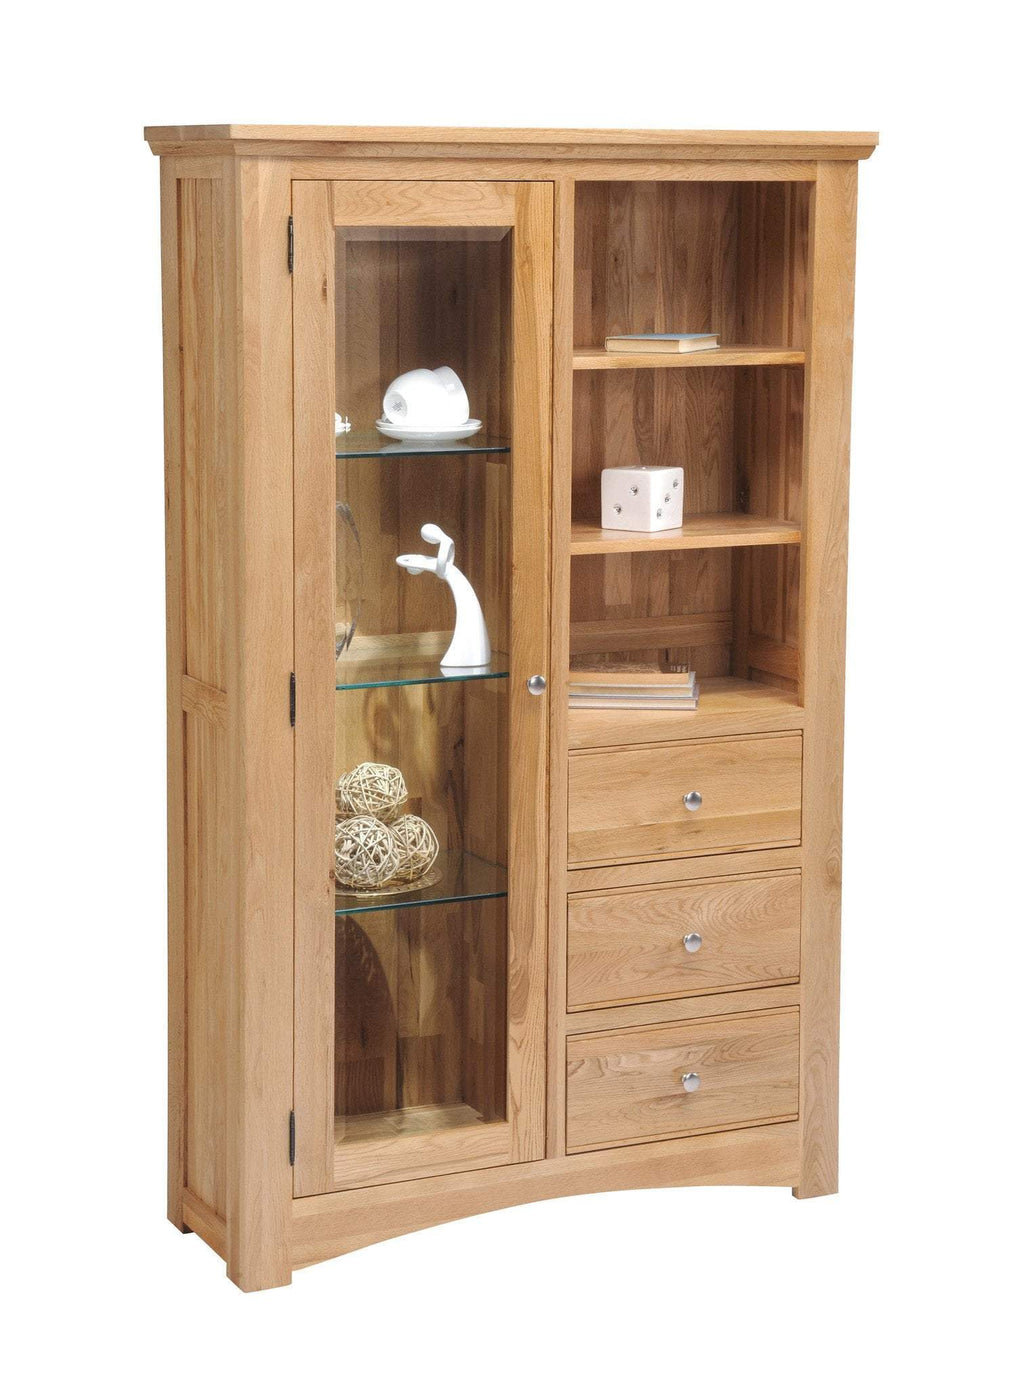 New England Oak Glass Combination Display Cabinet - Oak Village